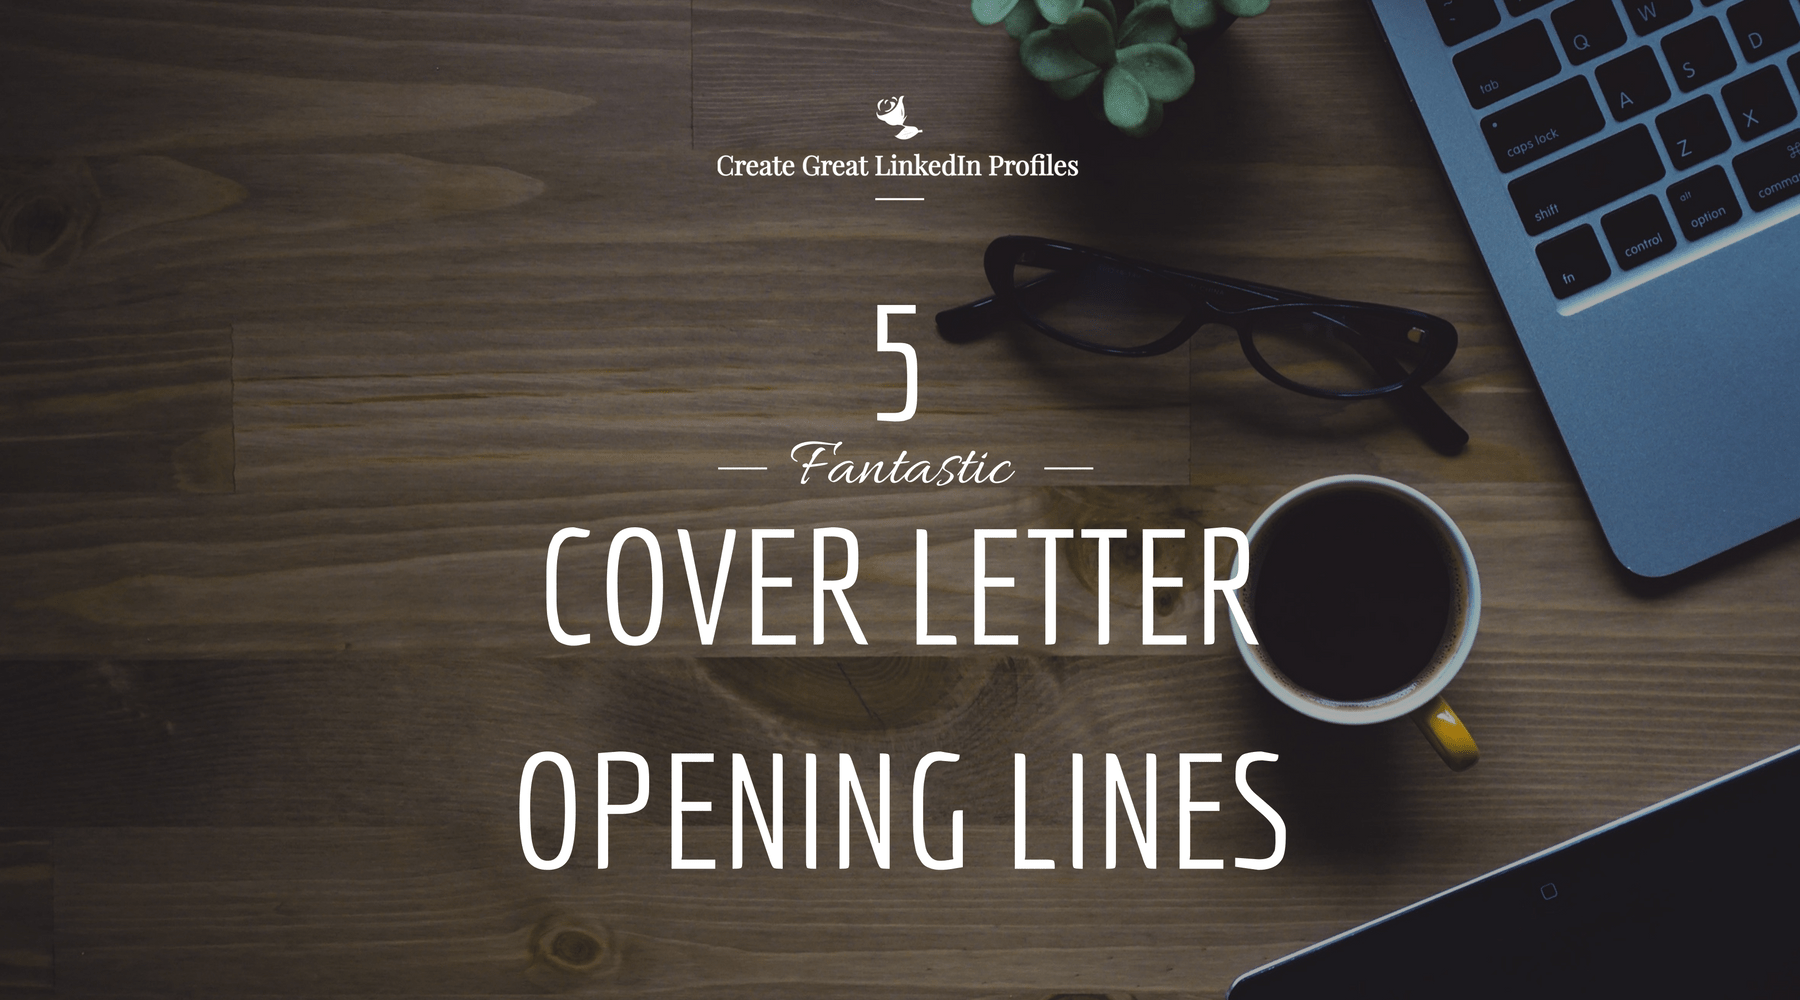 5 Fantastic Cover Letter Opening Lines Mary Rose Hoja LinkedIn QuickFix Get work now with LinkedIn